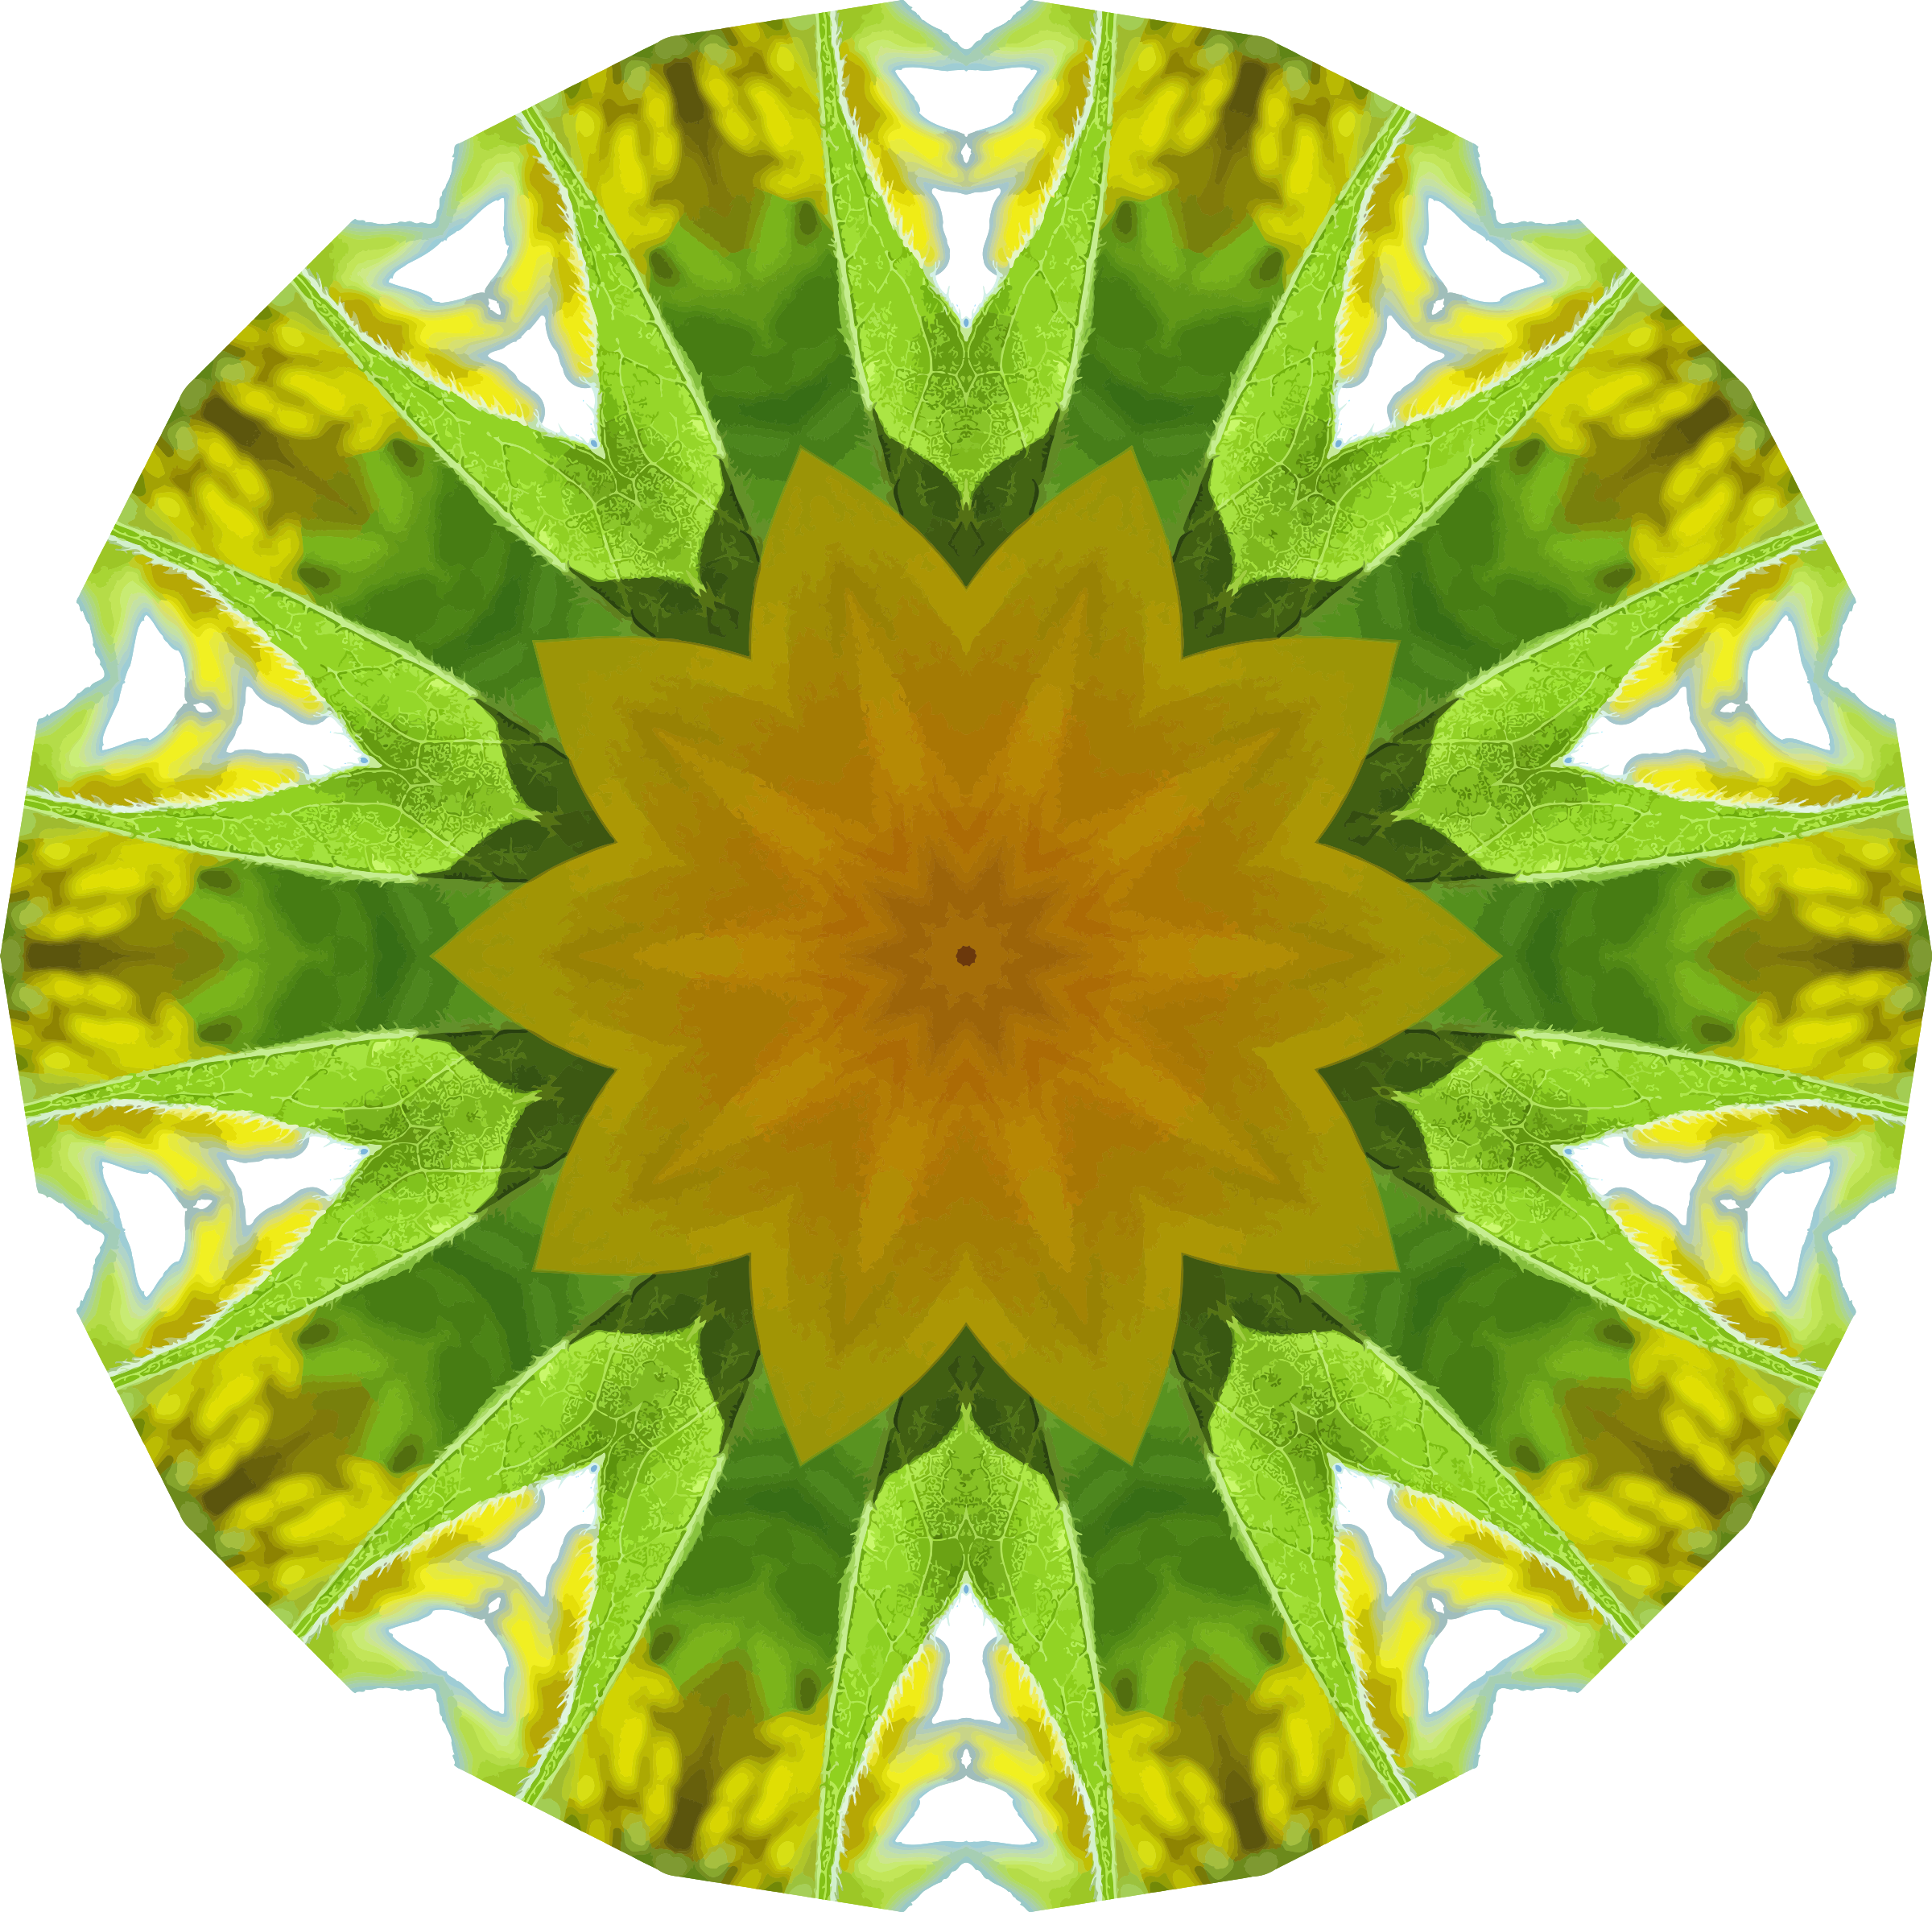 Sunflower kaleidoscope 11 by Firkin